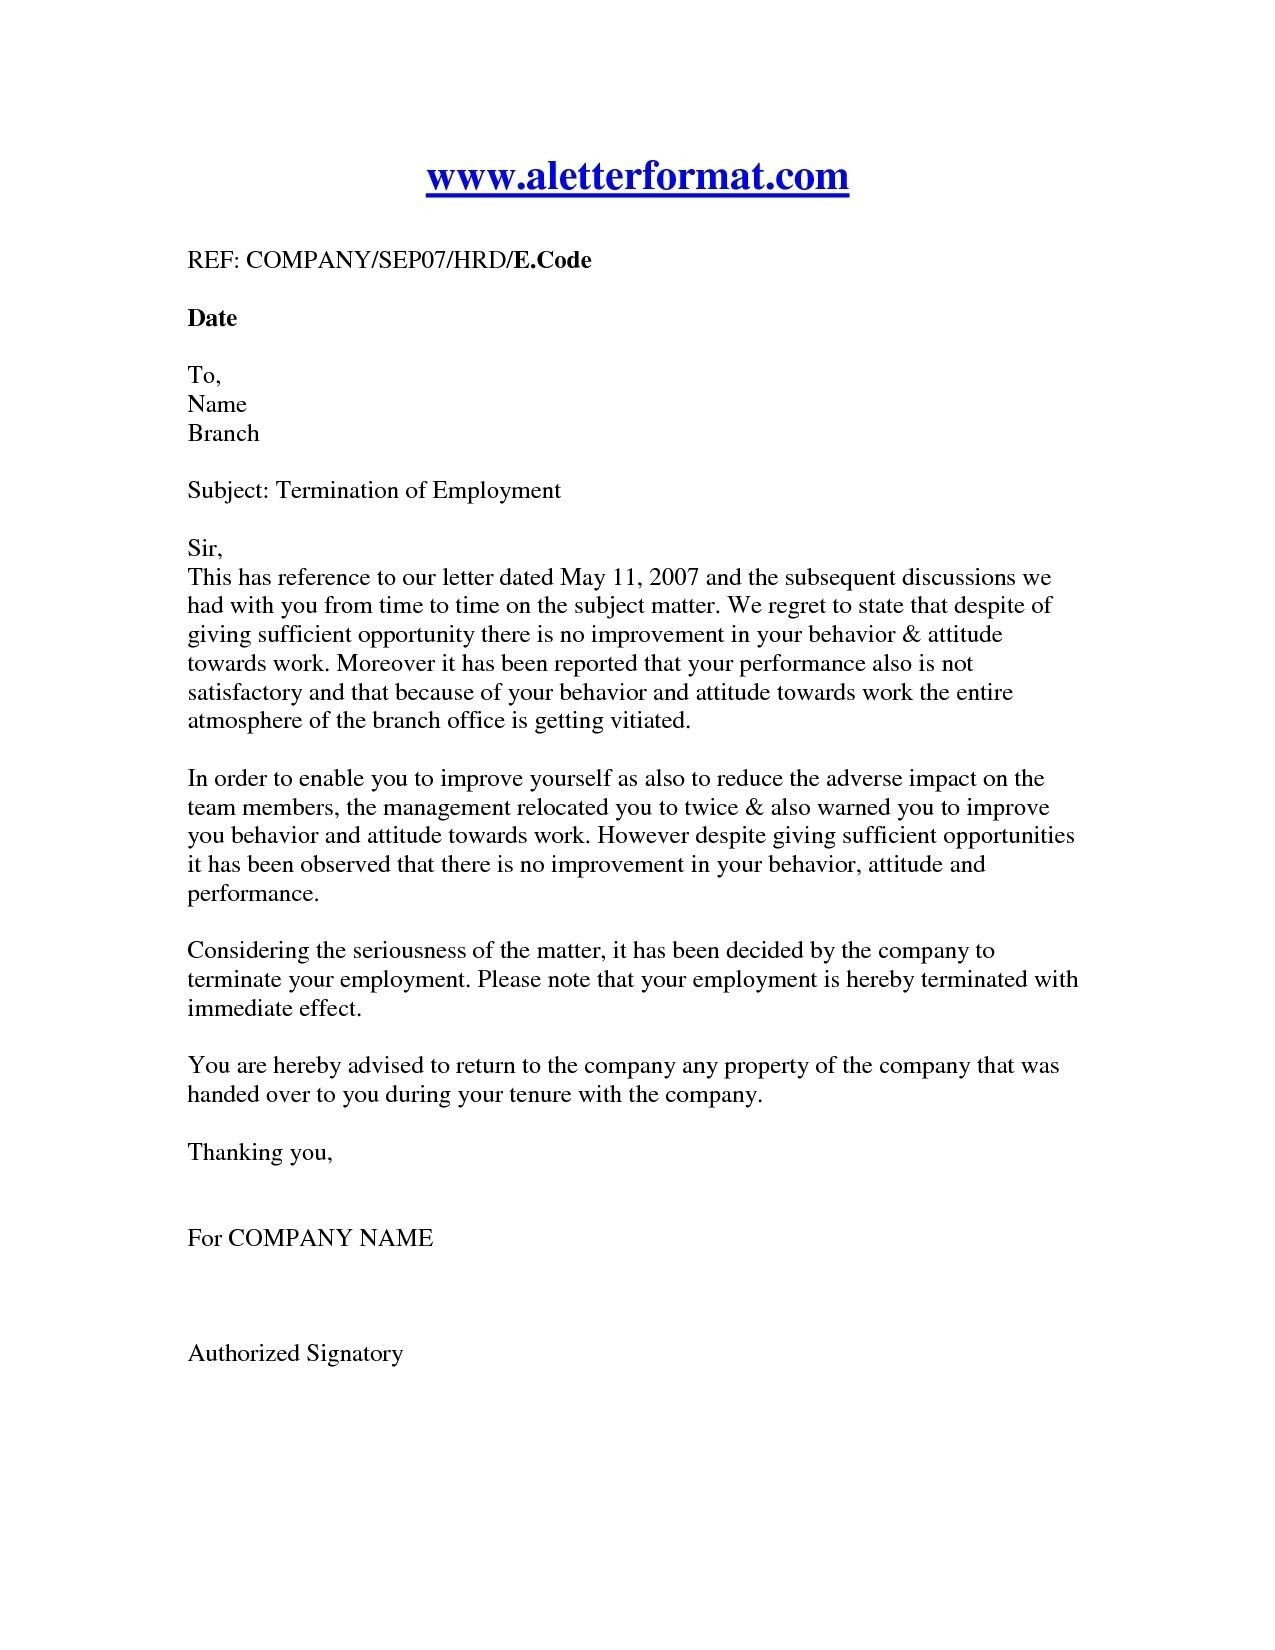 New Job Offer Cancellation Letter Letter of employment